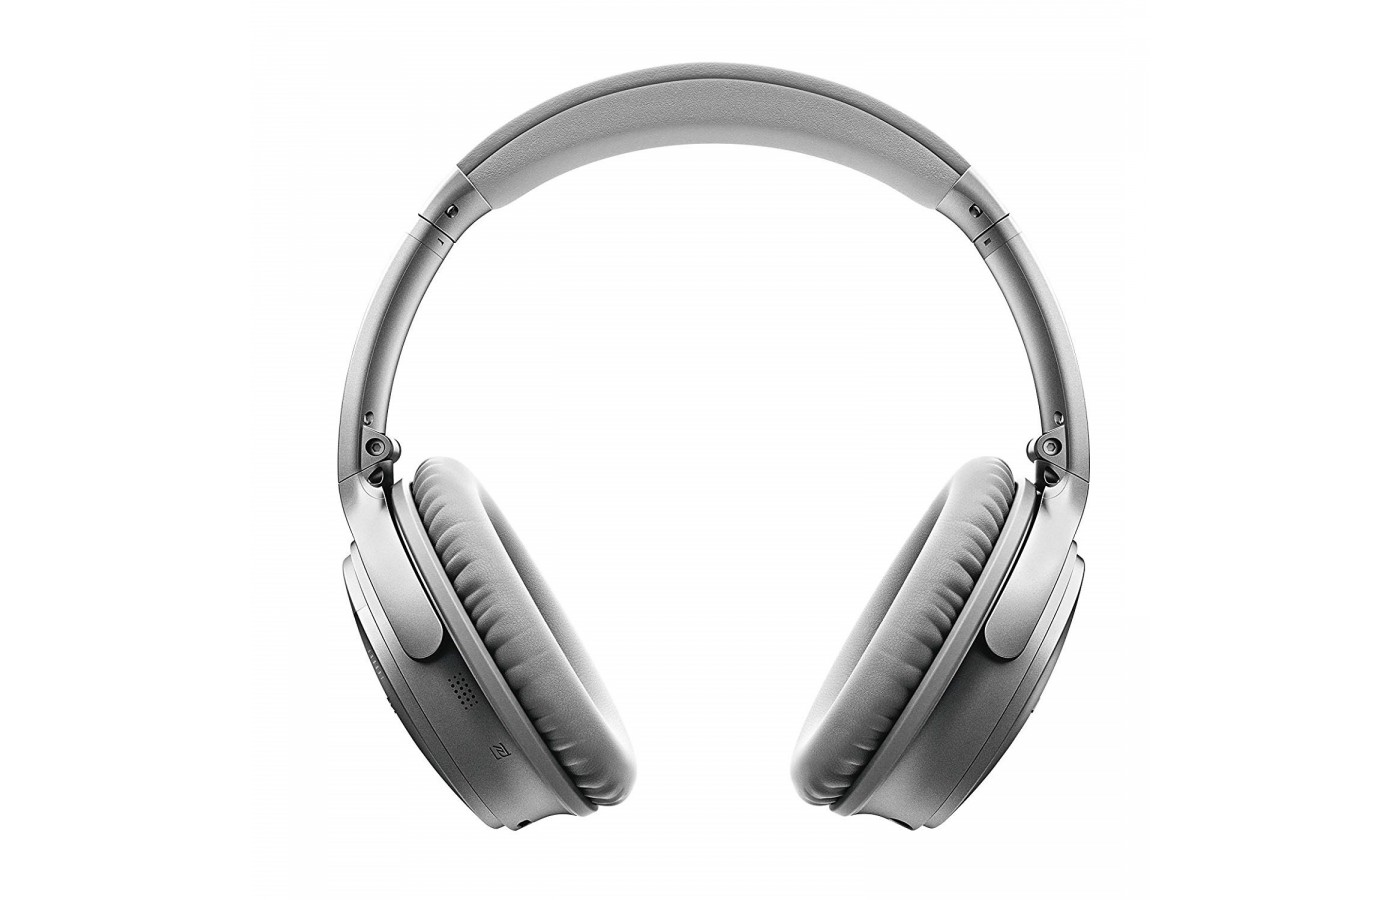 The Bose QuietComfort 35 offers an adjustable headband for a closer and more comfortable fit.